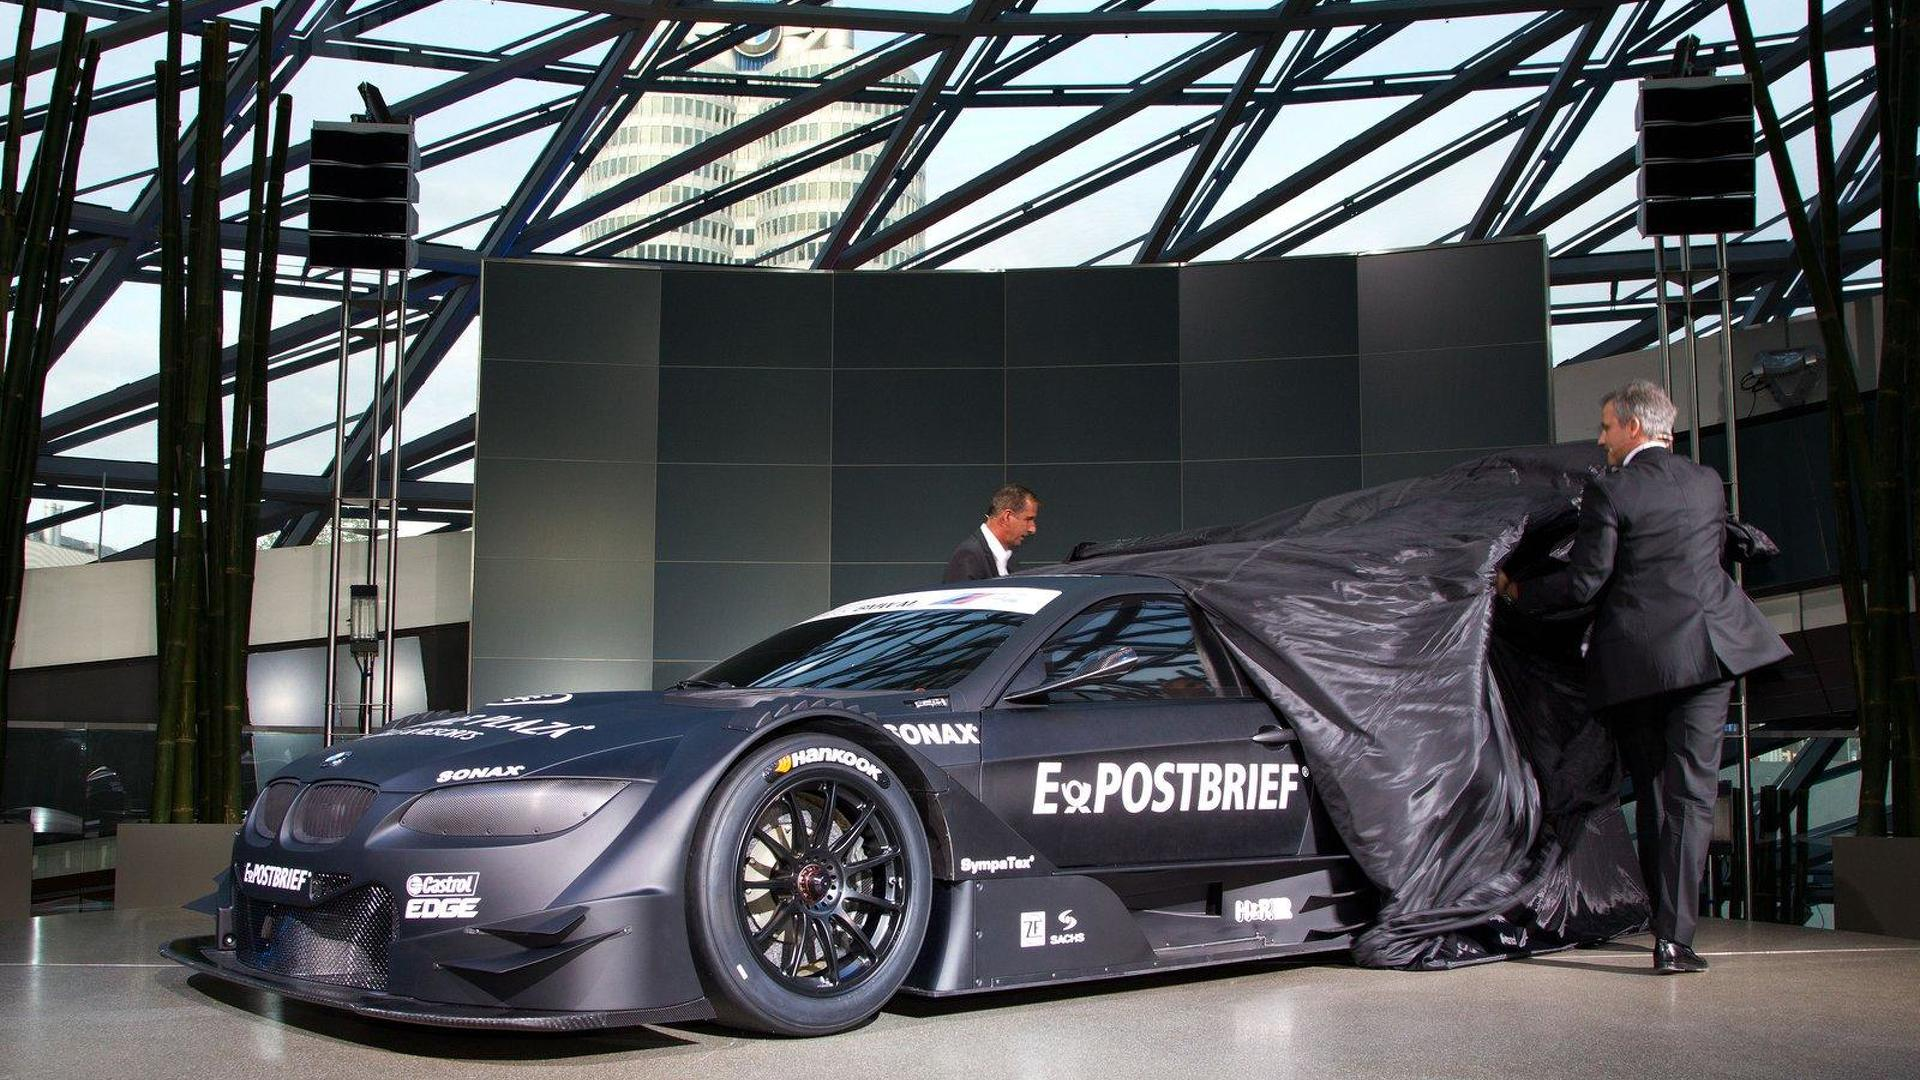 BMW celebrates their return to DTM racing [video]